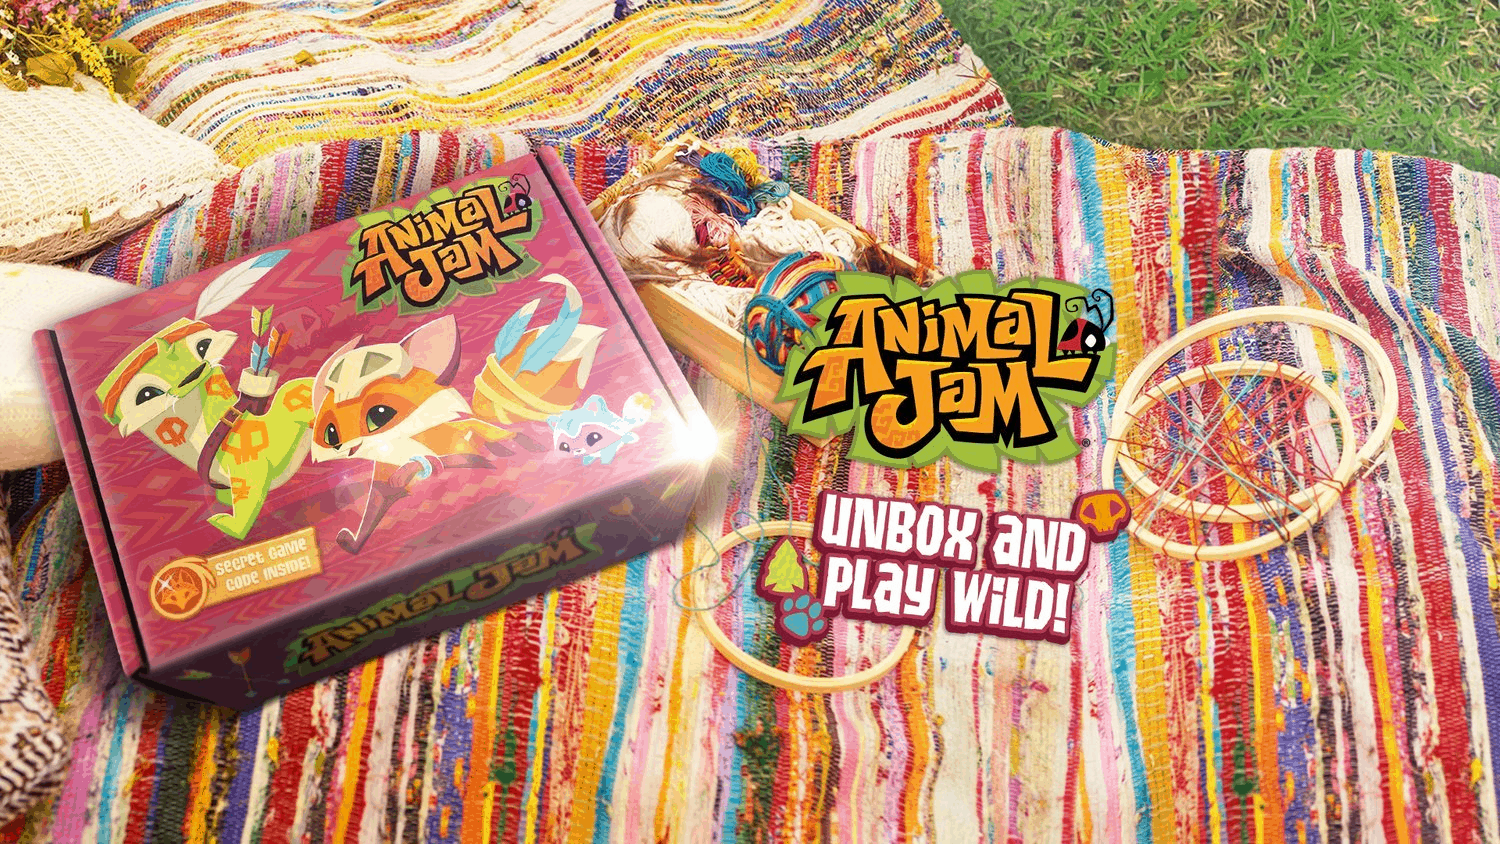 Animal Jam Box Summer 2019 Spoiler #1!